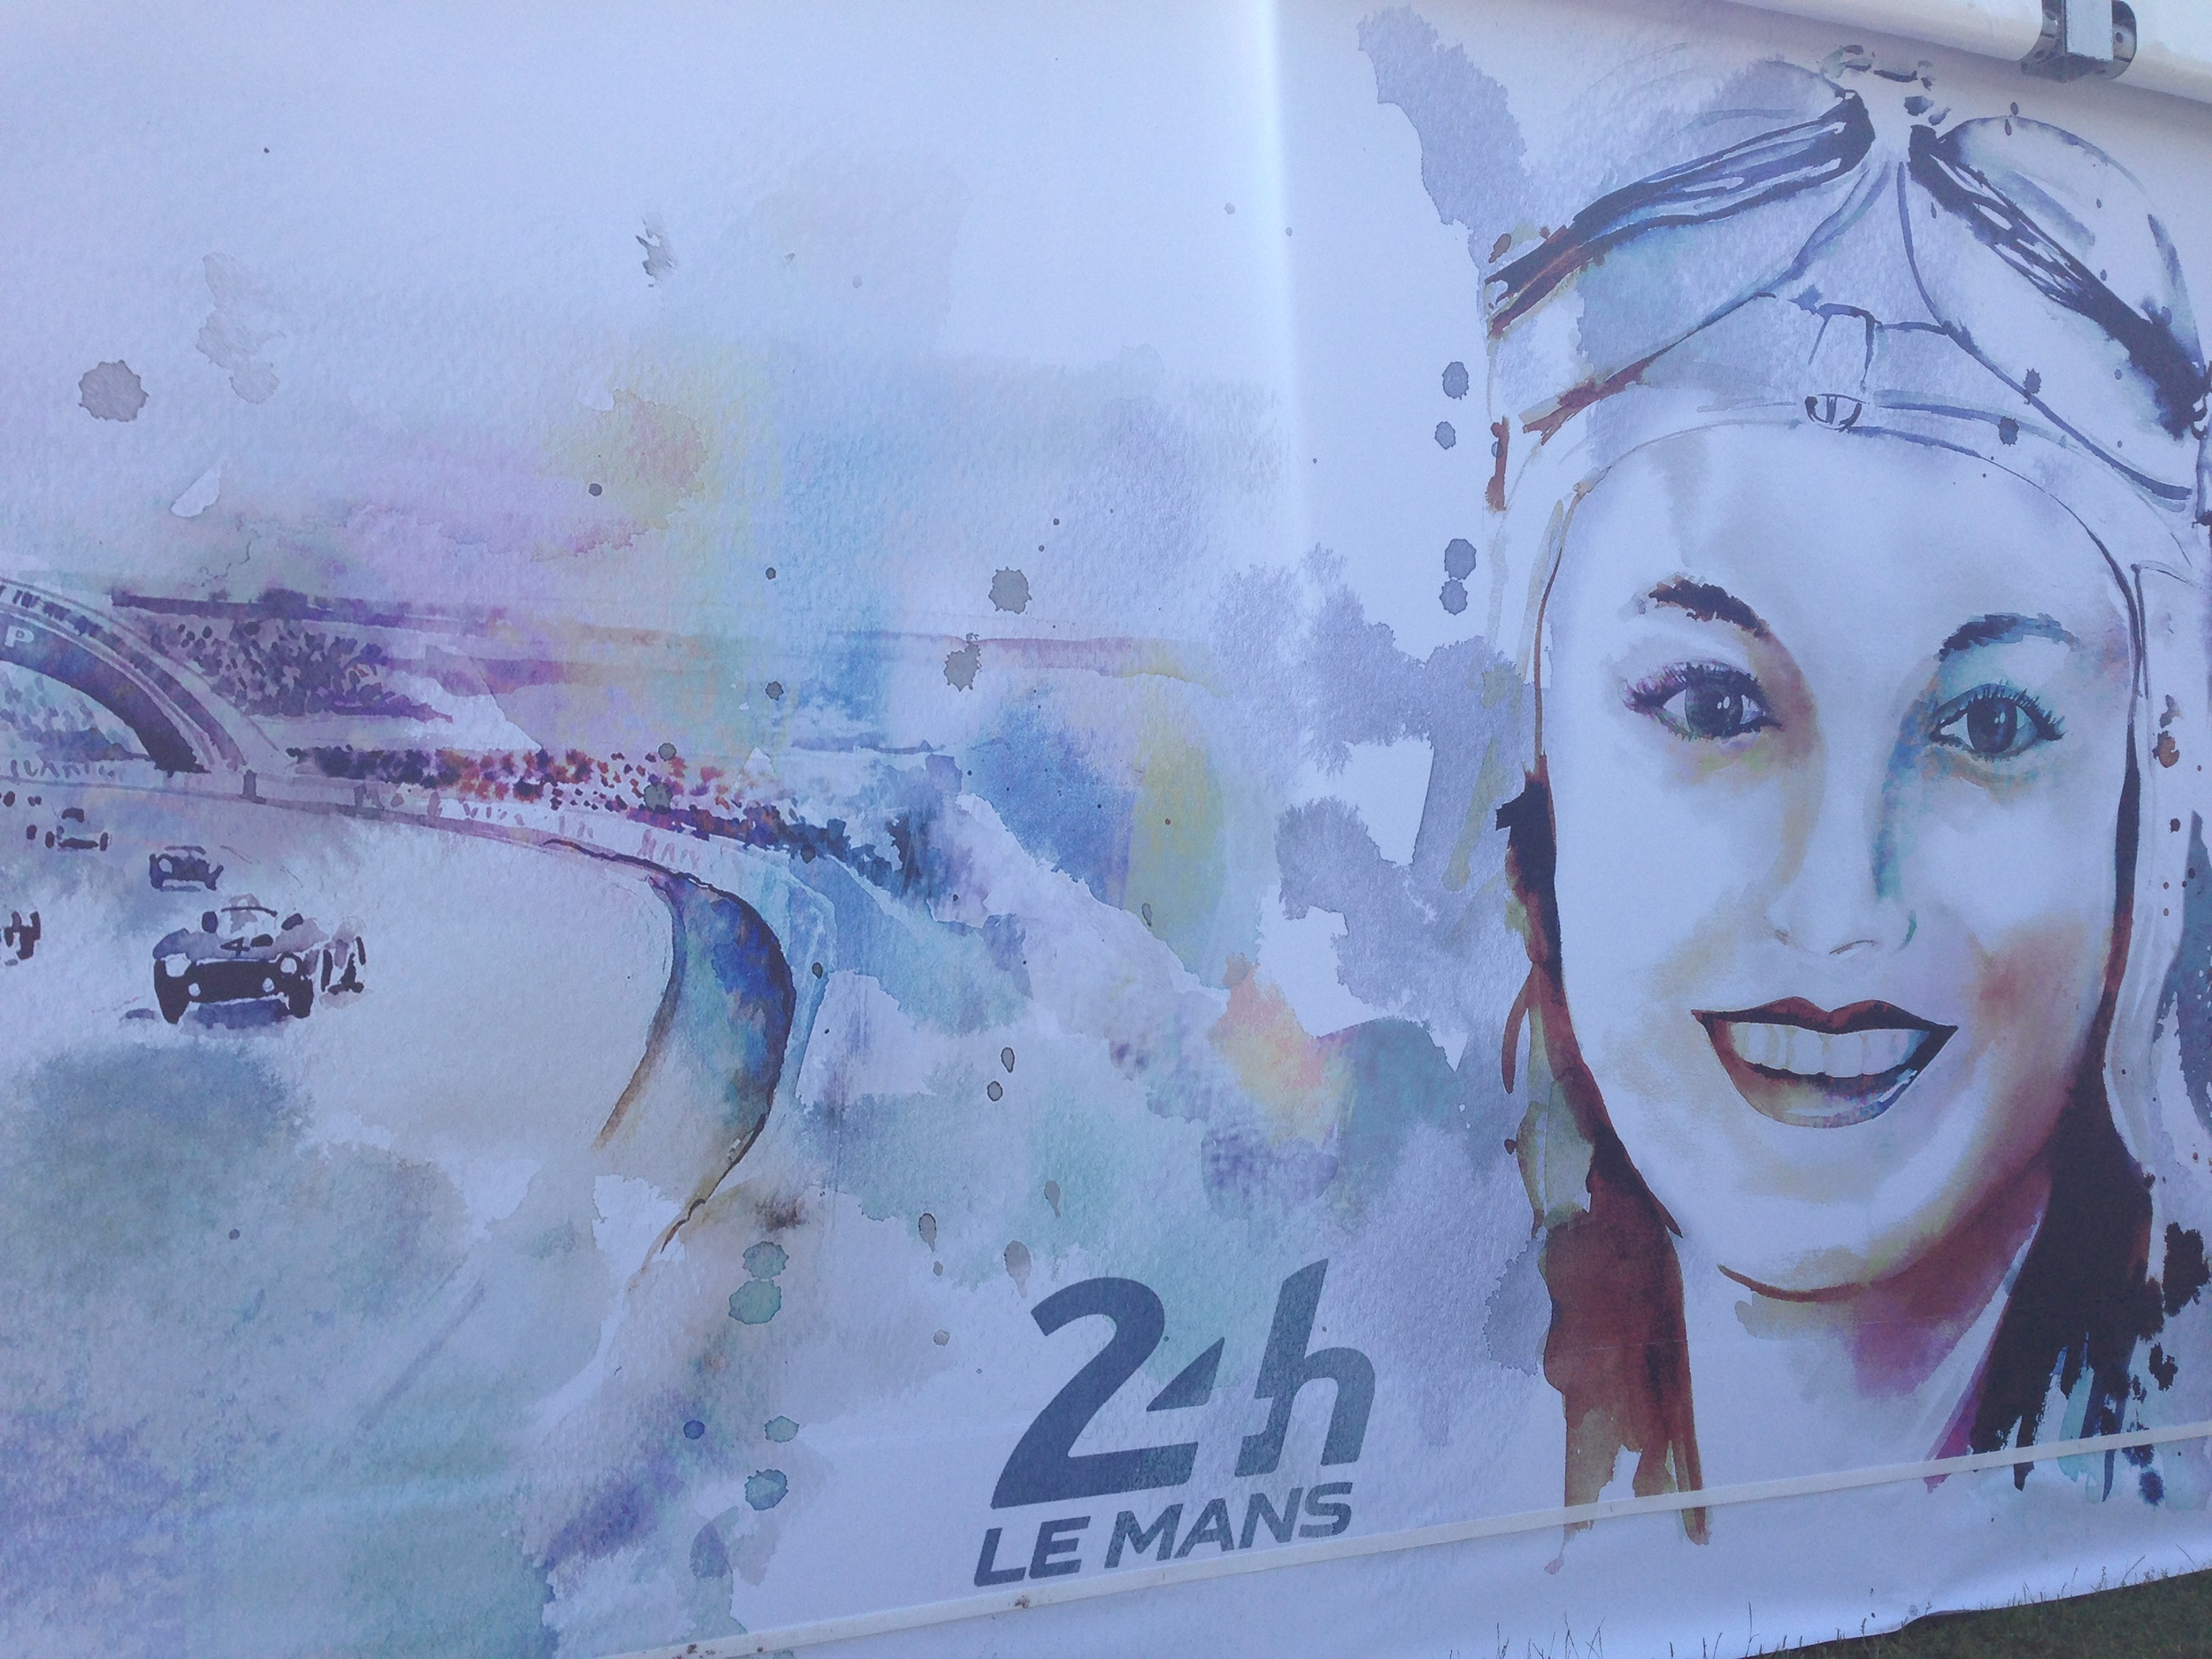 Outside the Women's Pavilion at Le Mans 24h. Photo with my iPhone5.